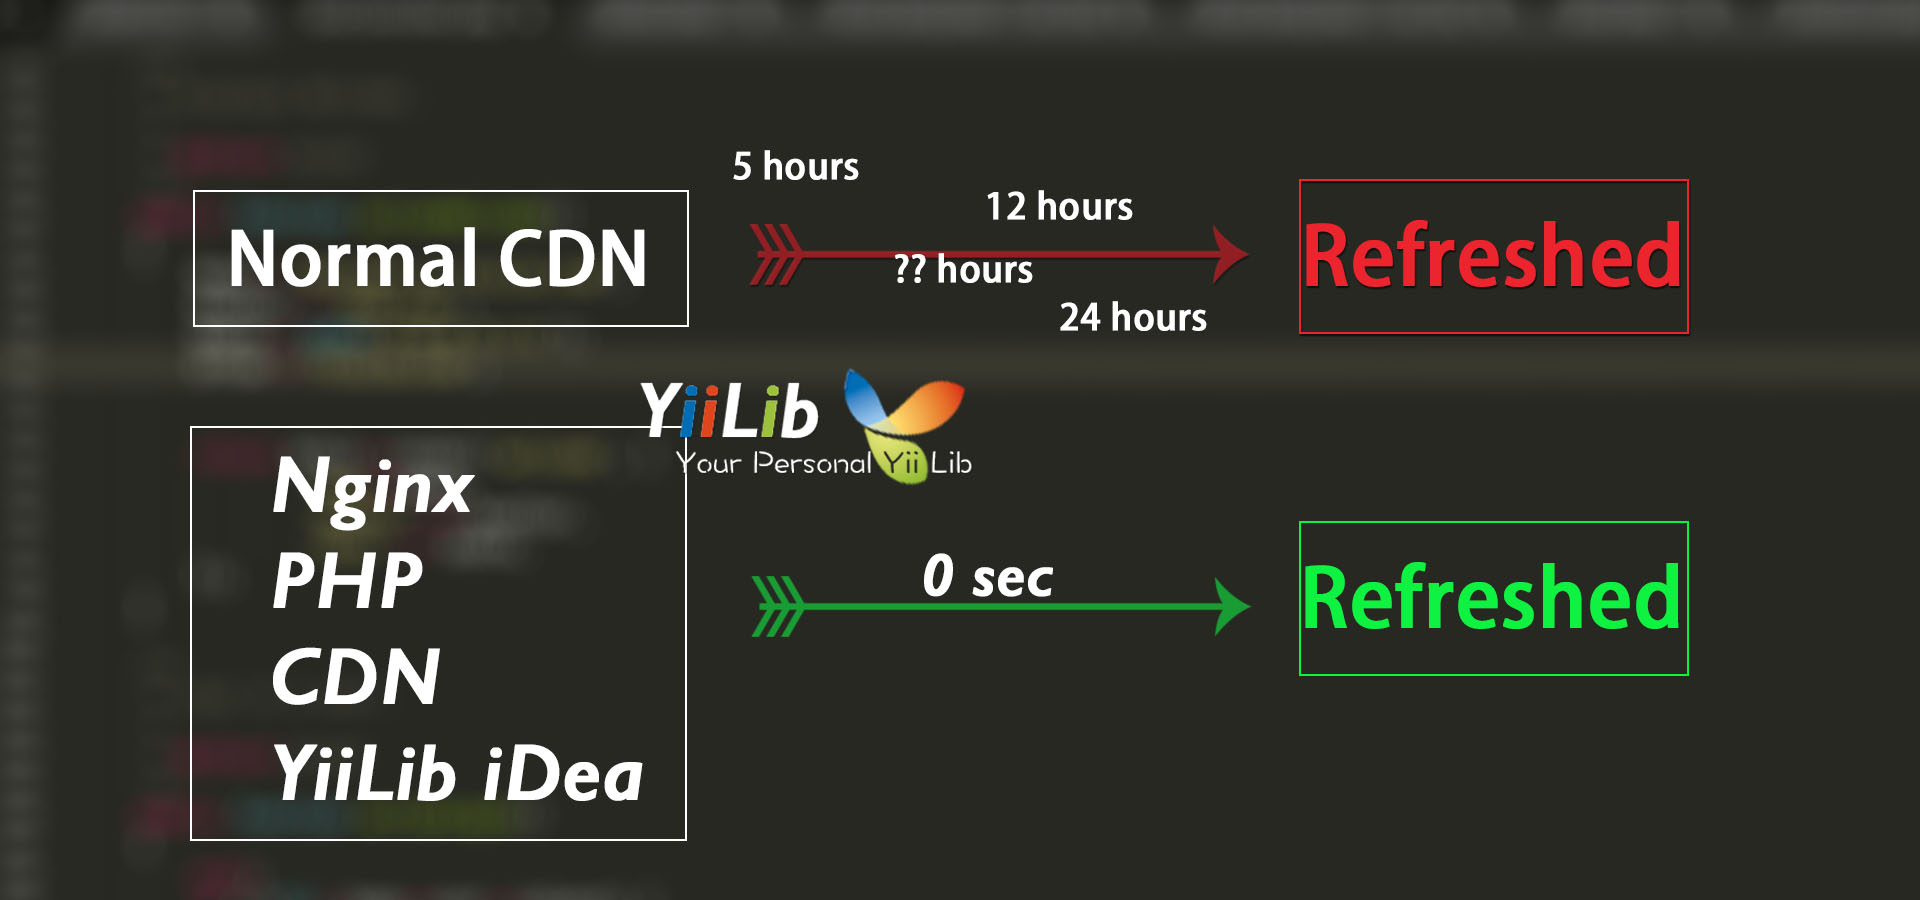 Use PHP and Nginx to control CDN refresh time